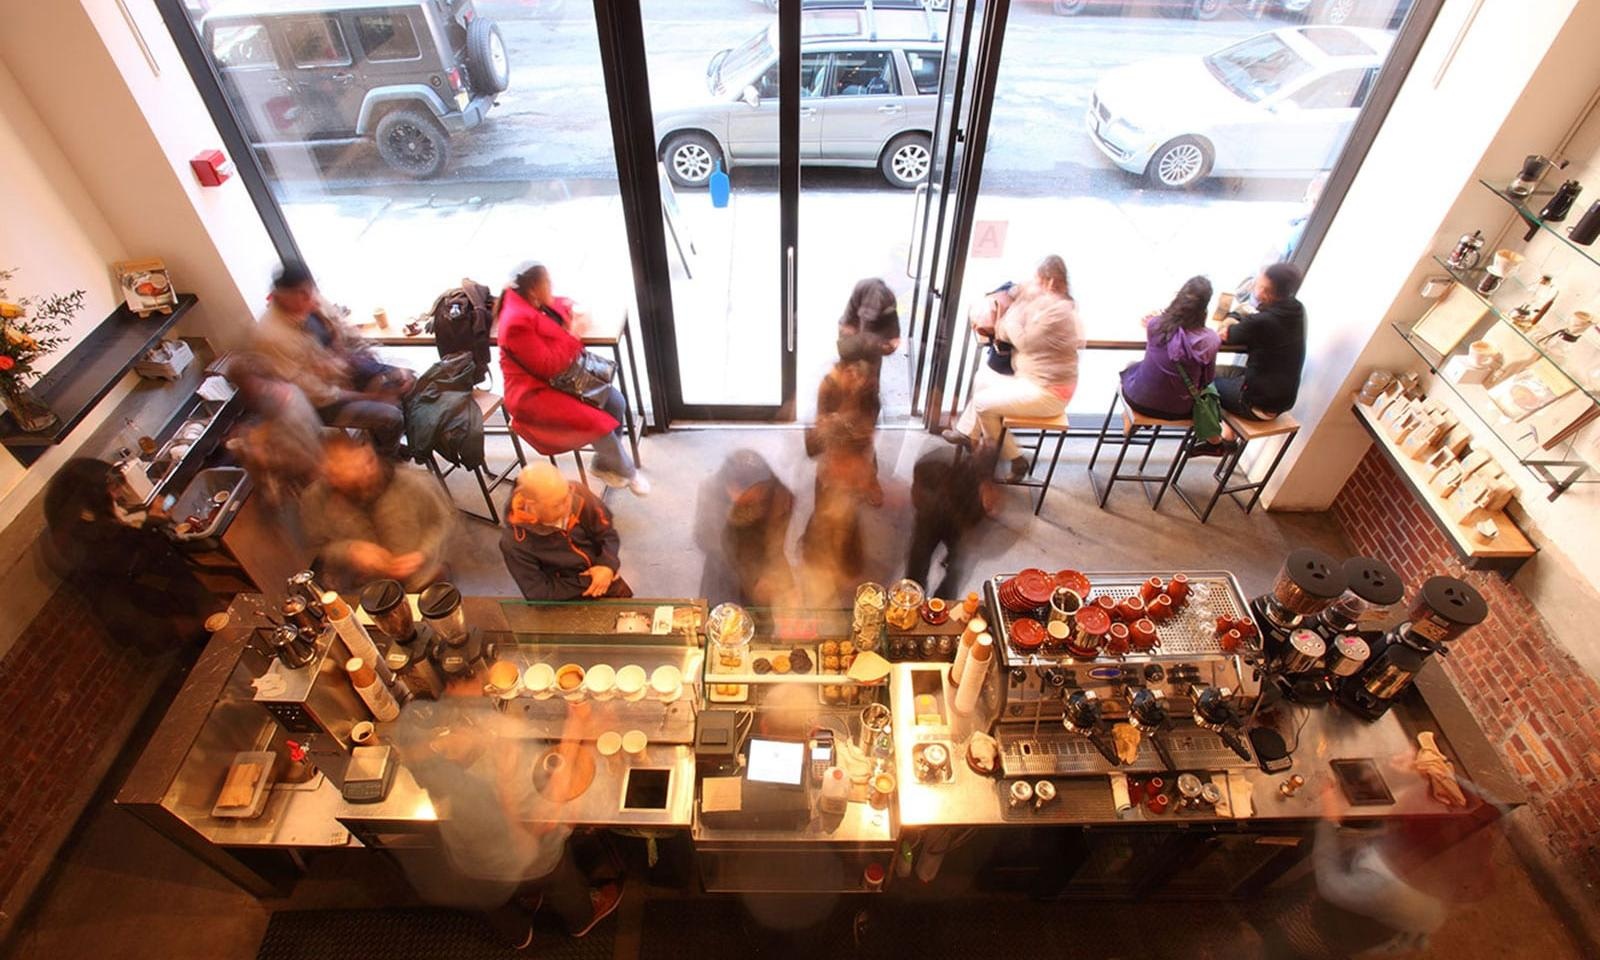 Eine Kleine Küche In New York Insider Tipp Die Top 10 Coffee Shops In New York City